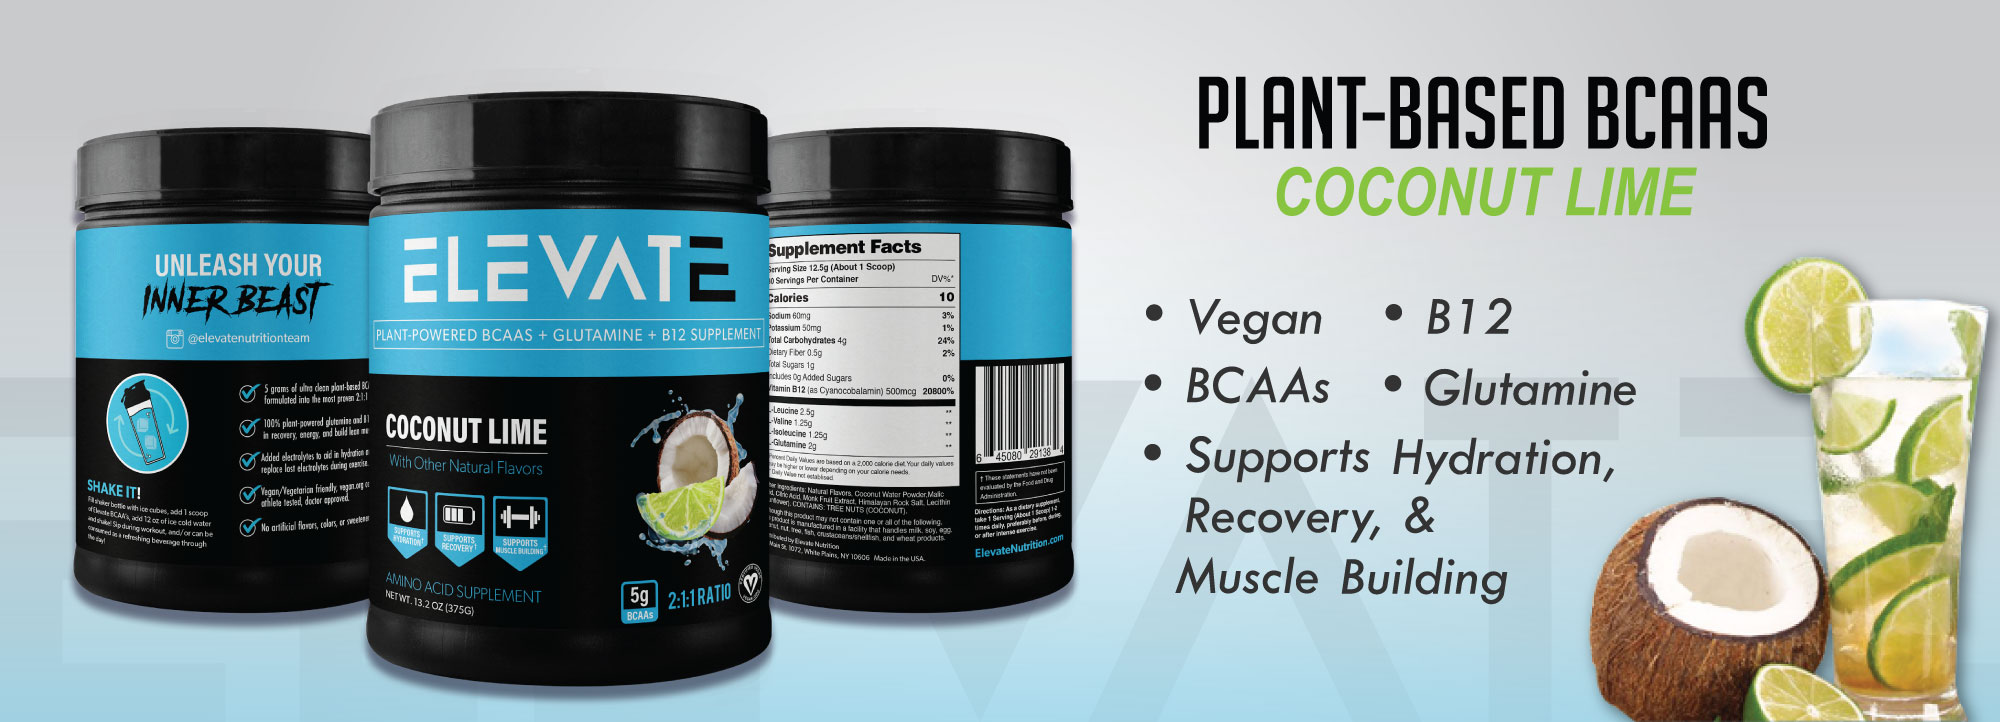 Plant Based Vegan BCAA